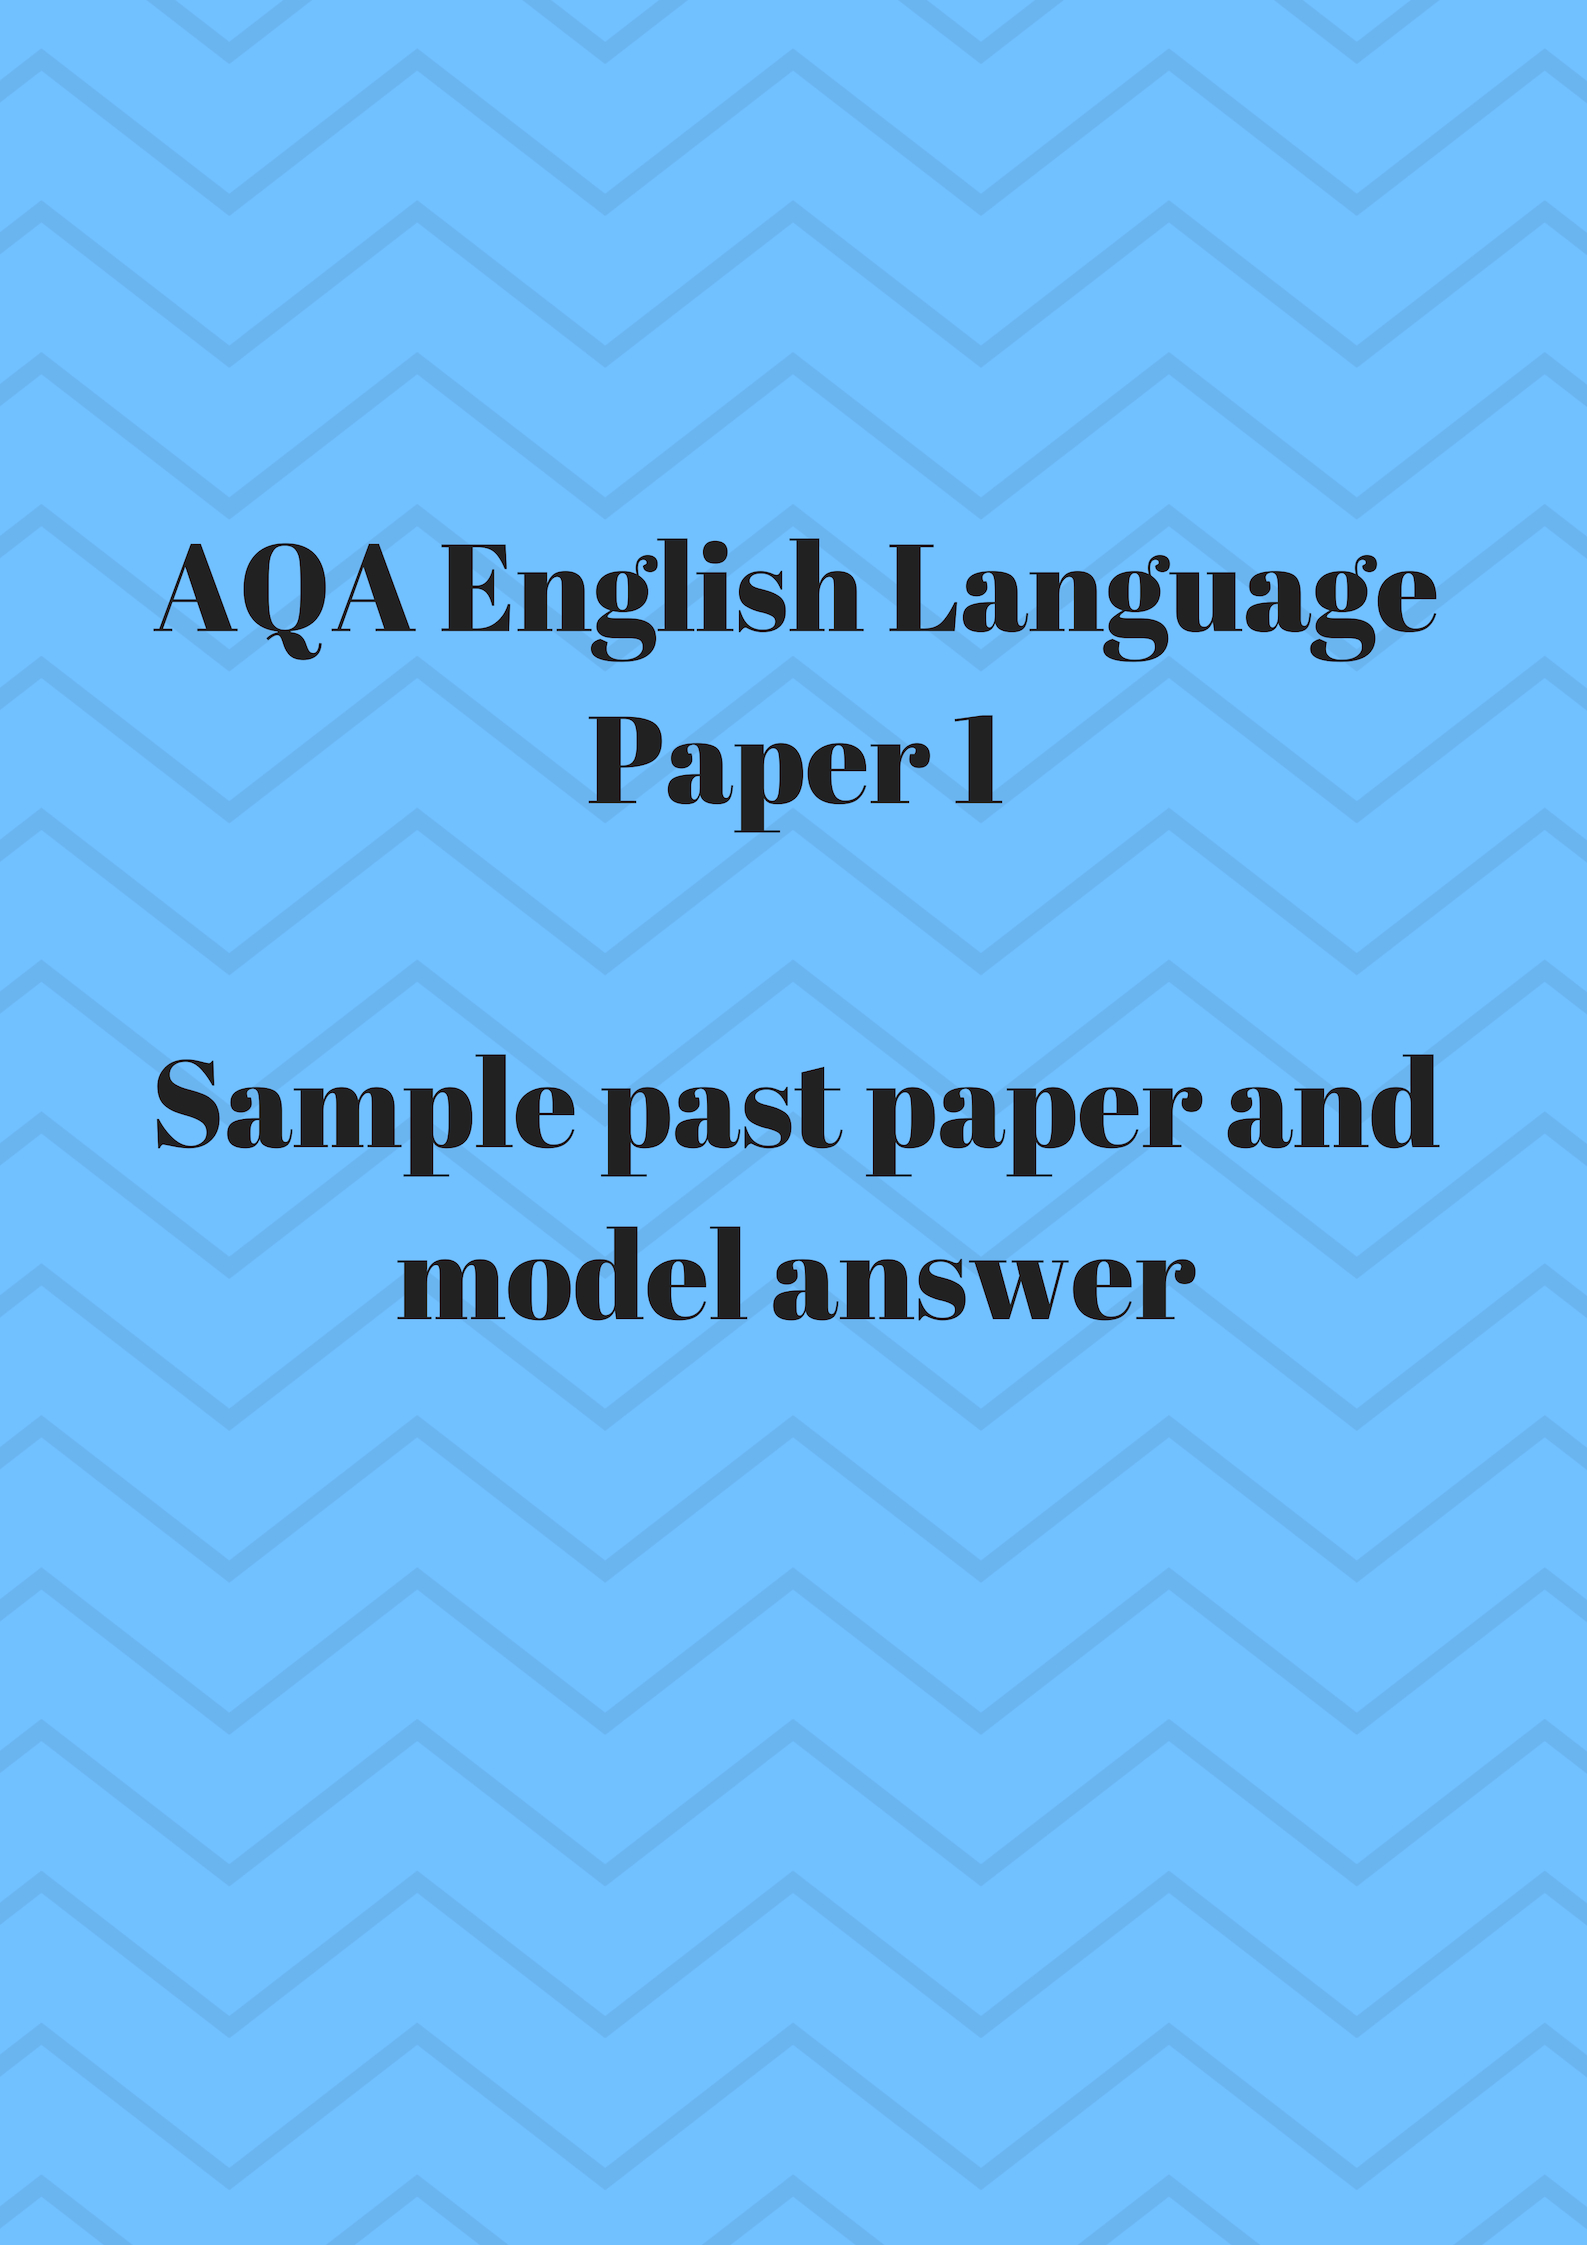 AQA English Language Paper 1Sample past paper and model answer.jpg